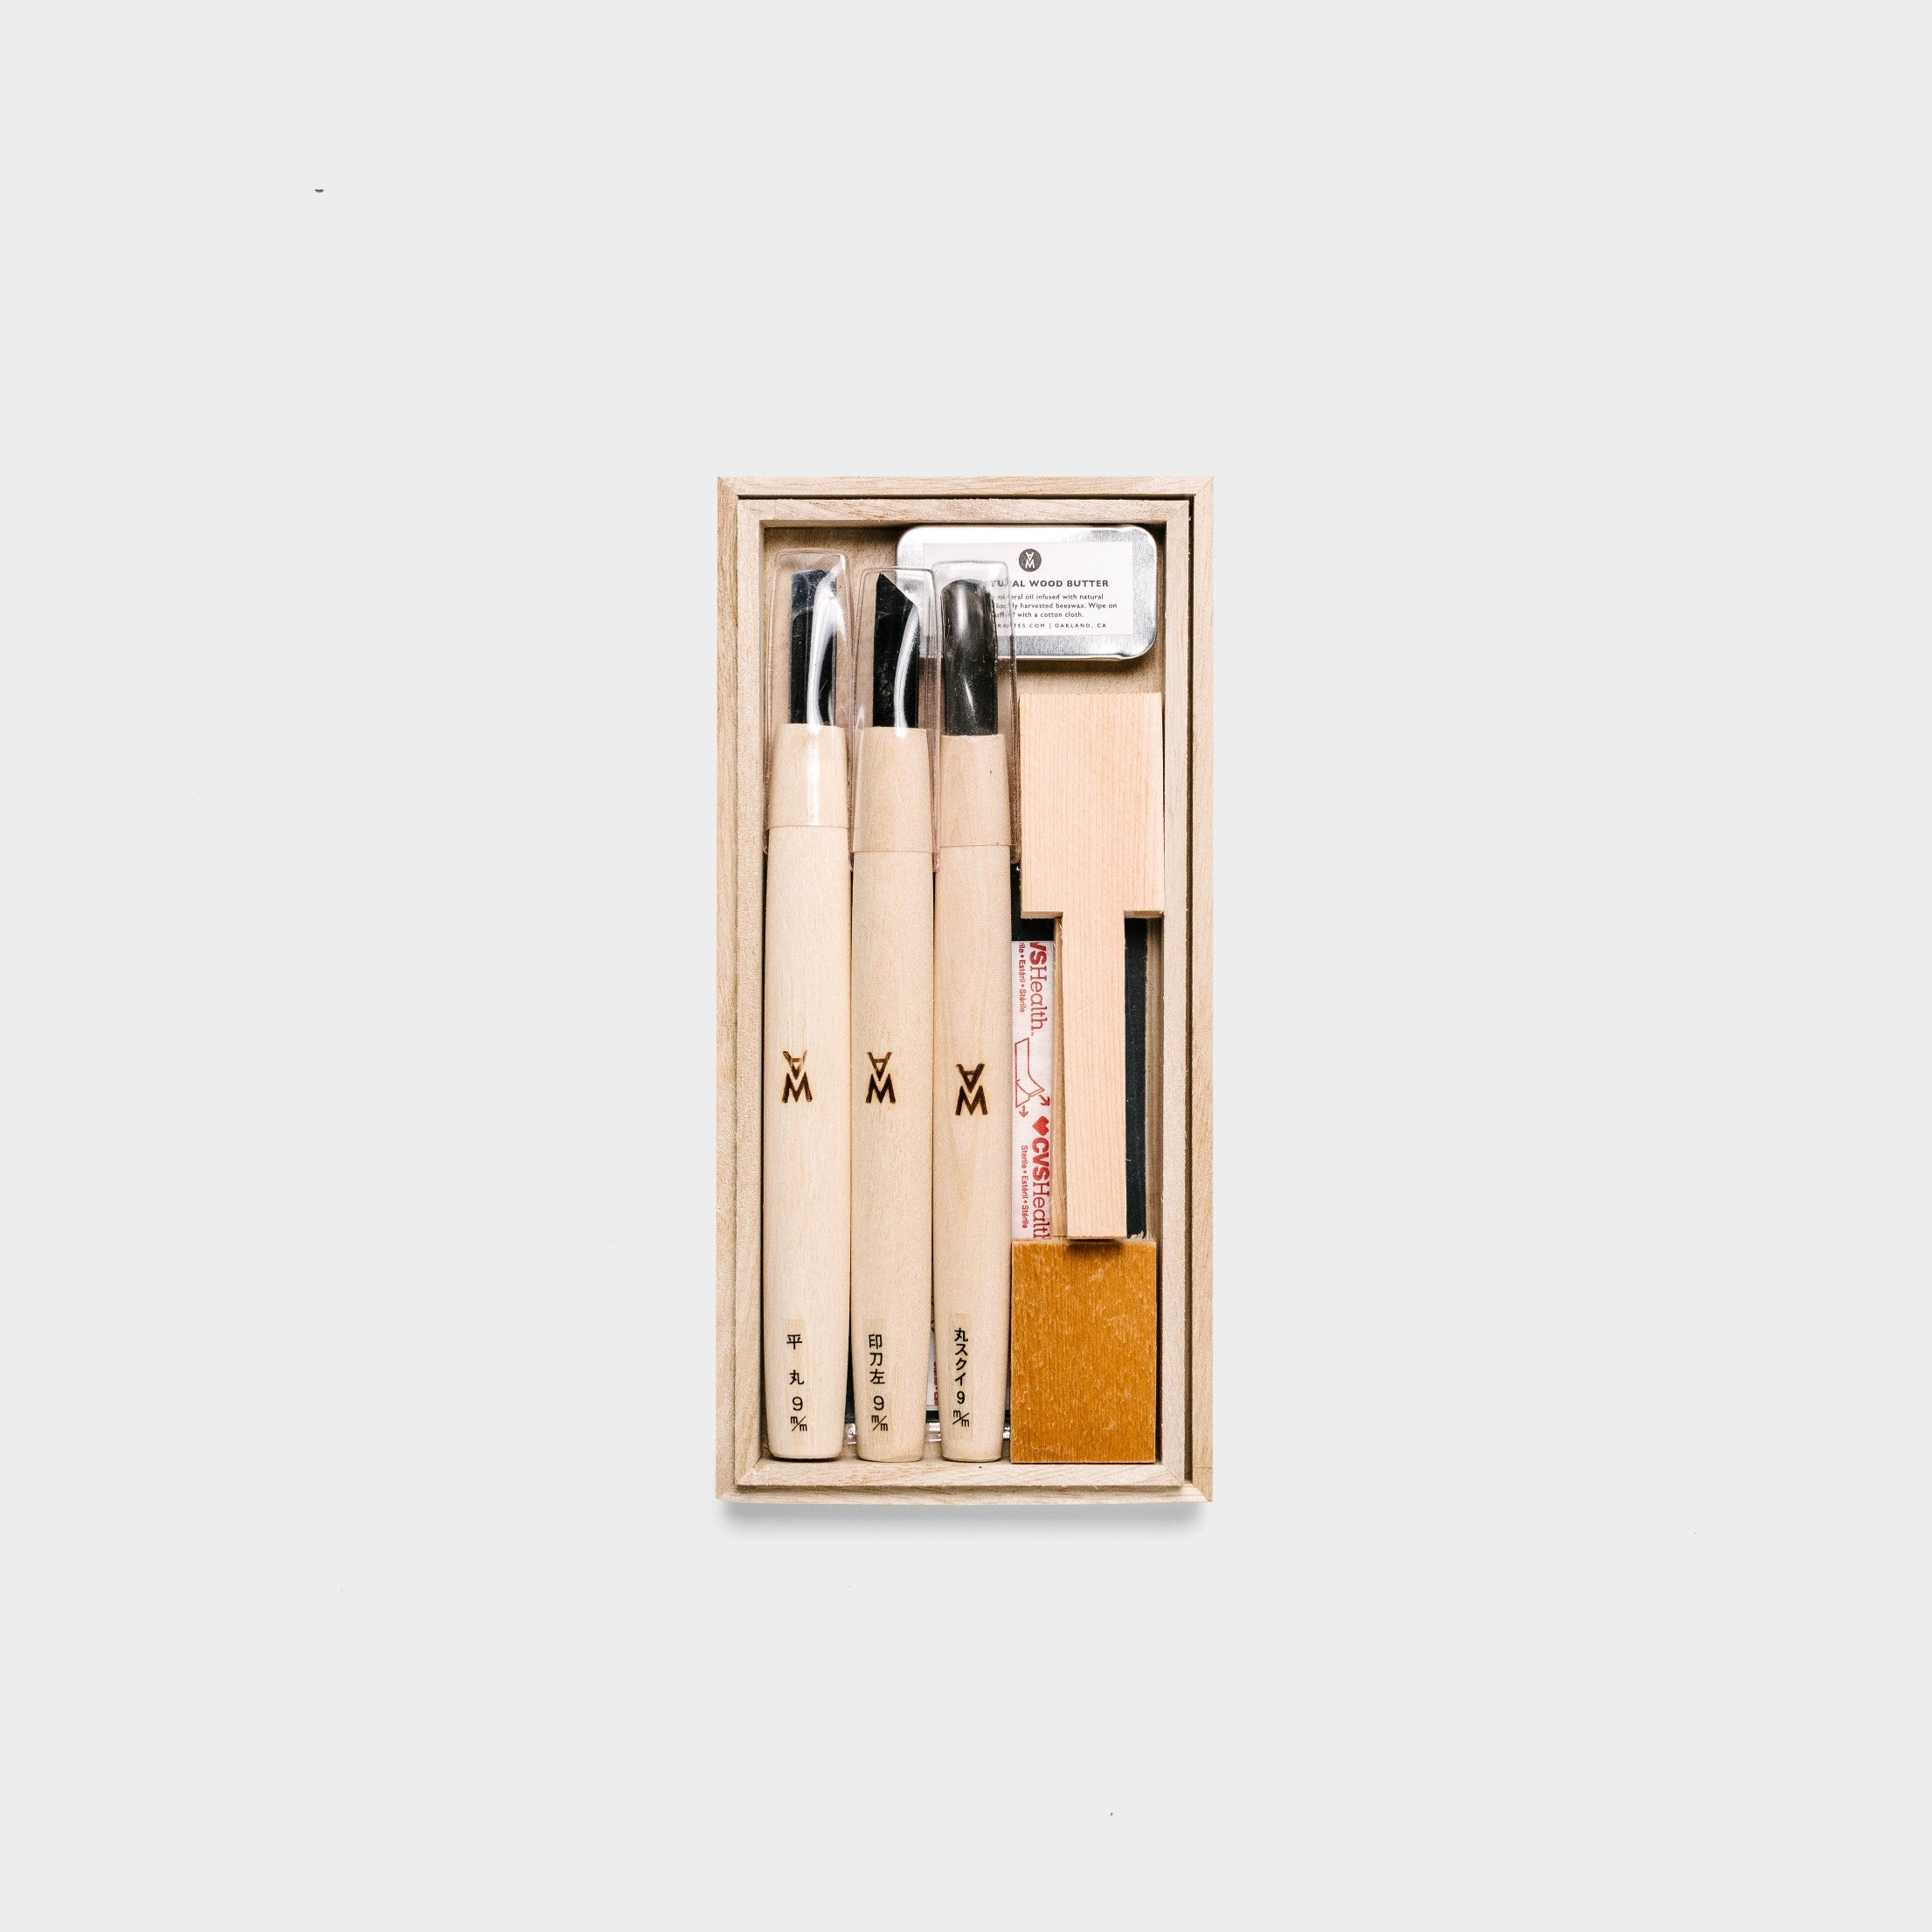 Japanese Beginner Spoon Carving Kit